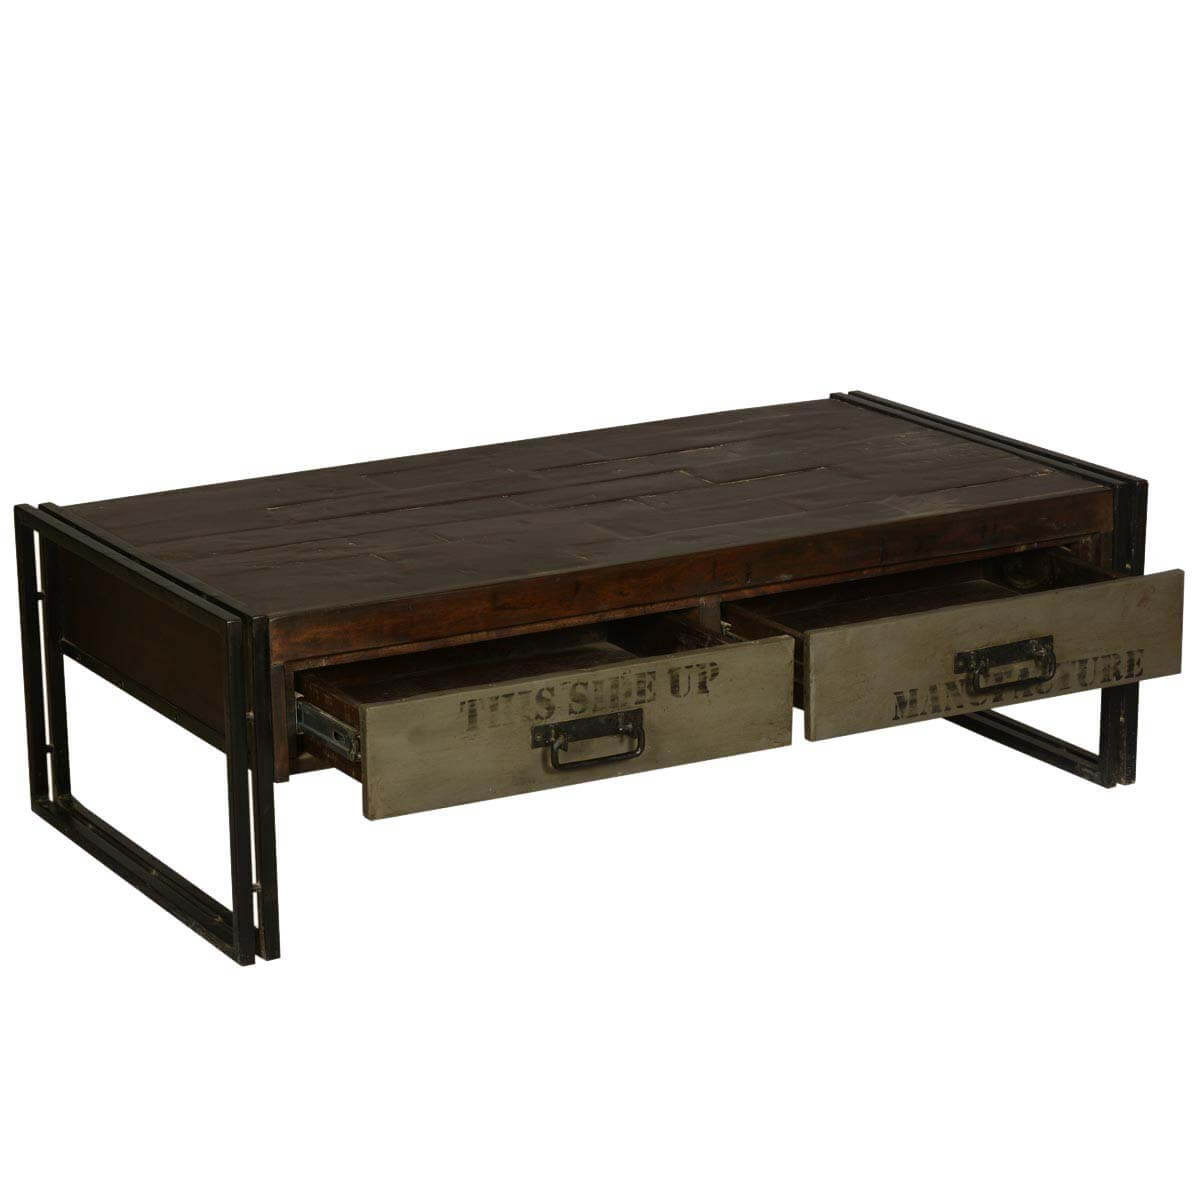 Philadelphia Modern Rustic Reclaimed Wood Metal Coffee Table: rustic wood and metal coffee table